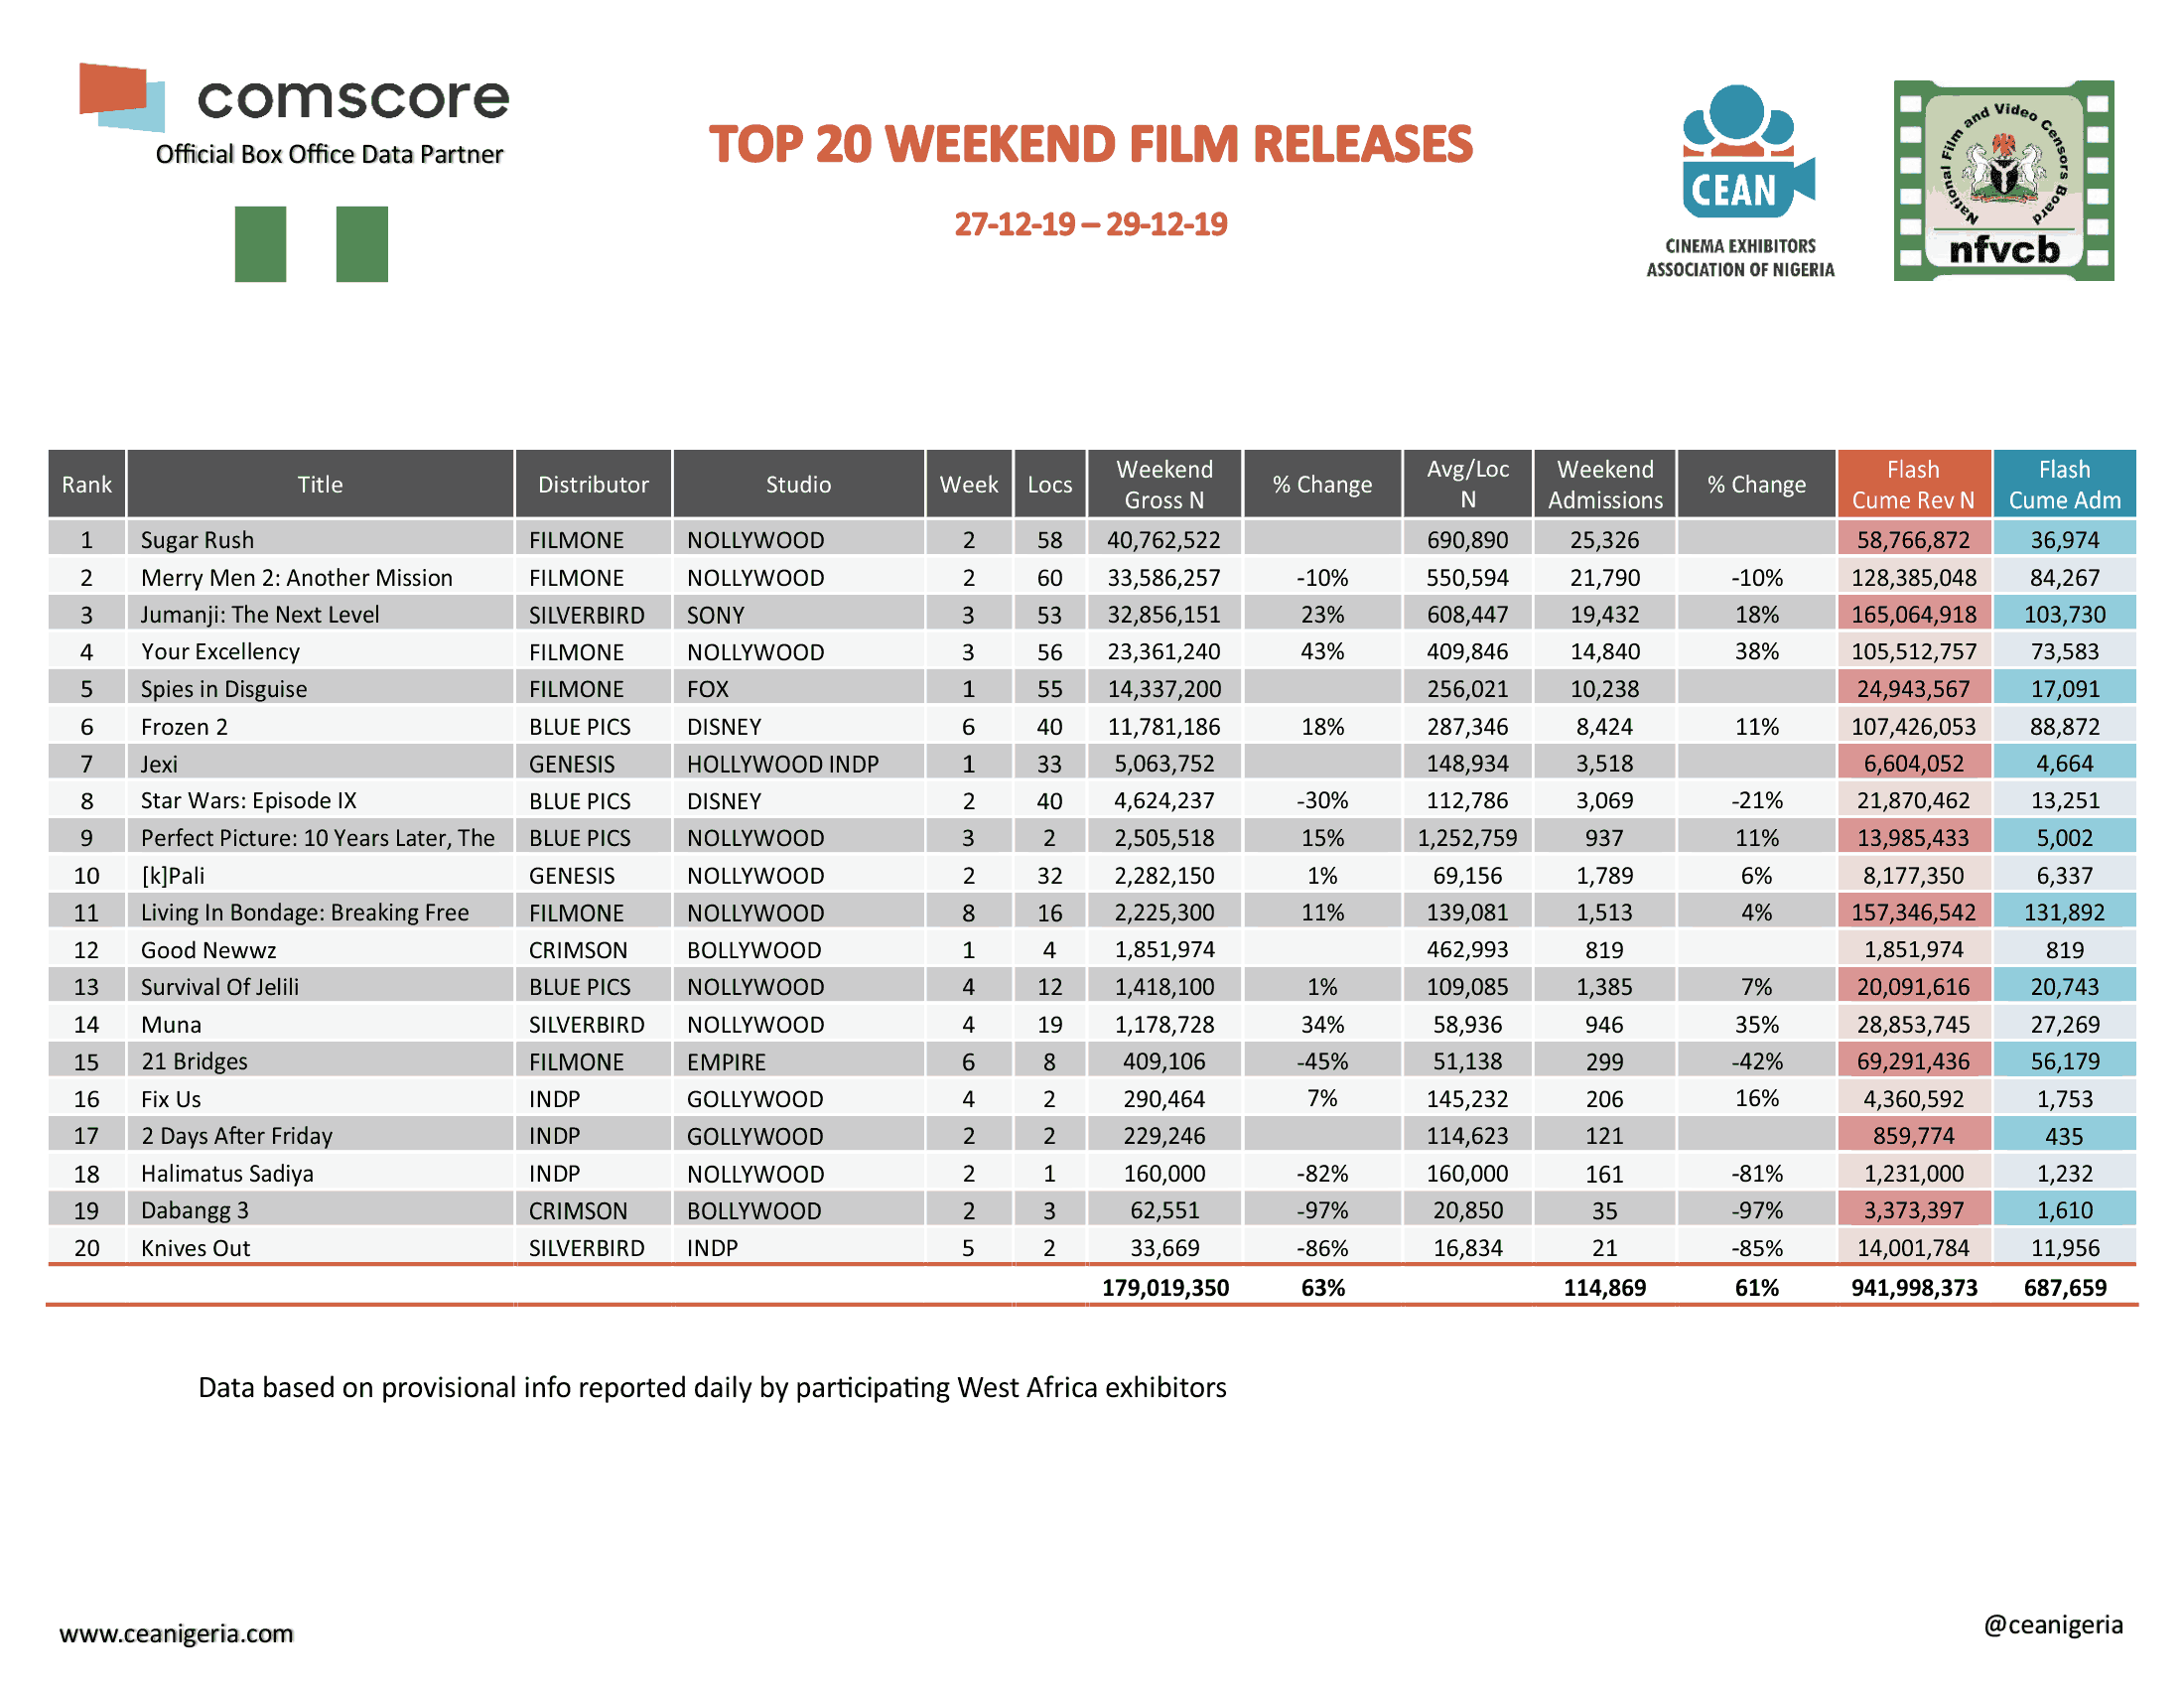 Top 20 films 27th - 29th December 2019